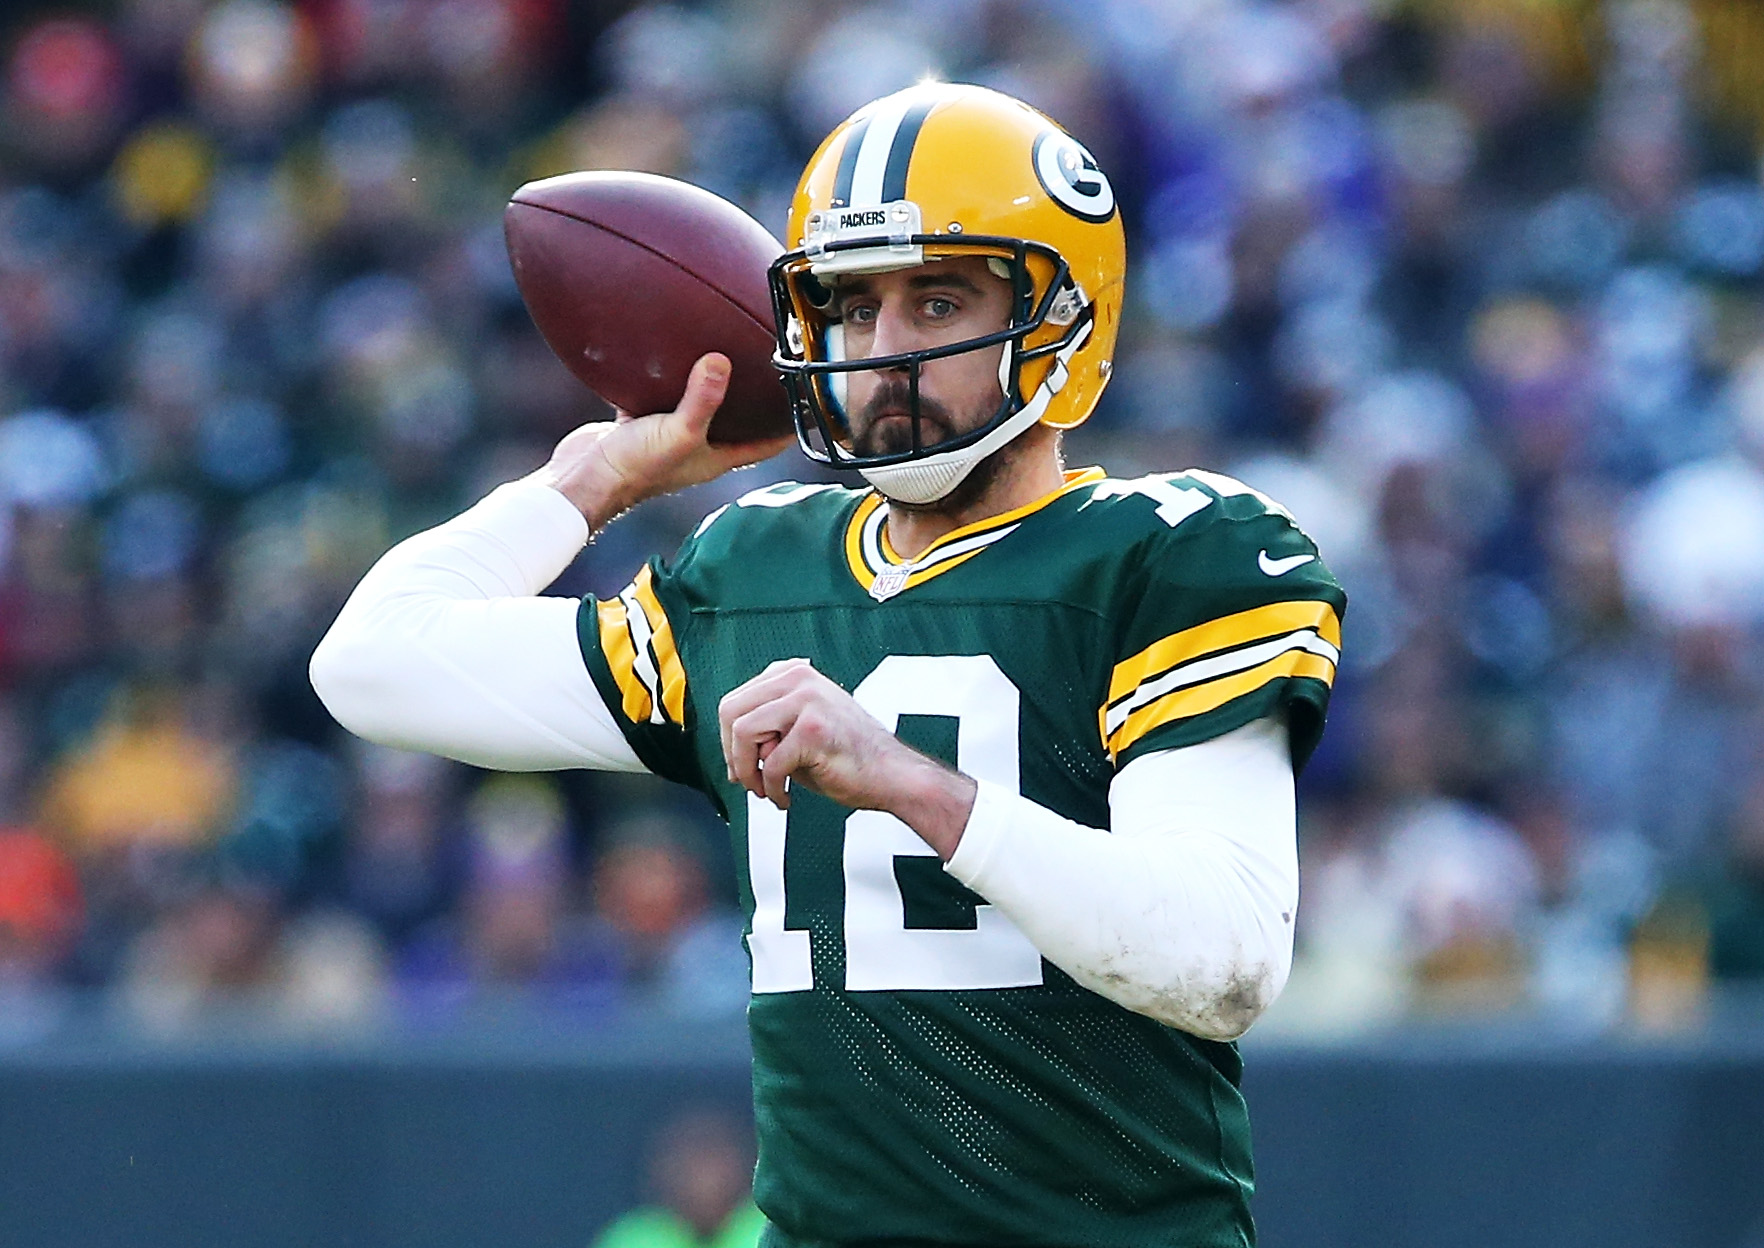 packers playoffs, gb packers playoff chances, packers wild card playoffs, NFL, Playoff, Picture, AFC, NFC, Seeding, Updated, playoff chances, packers postseason, packers playoffs schedule, packers nfc north